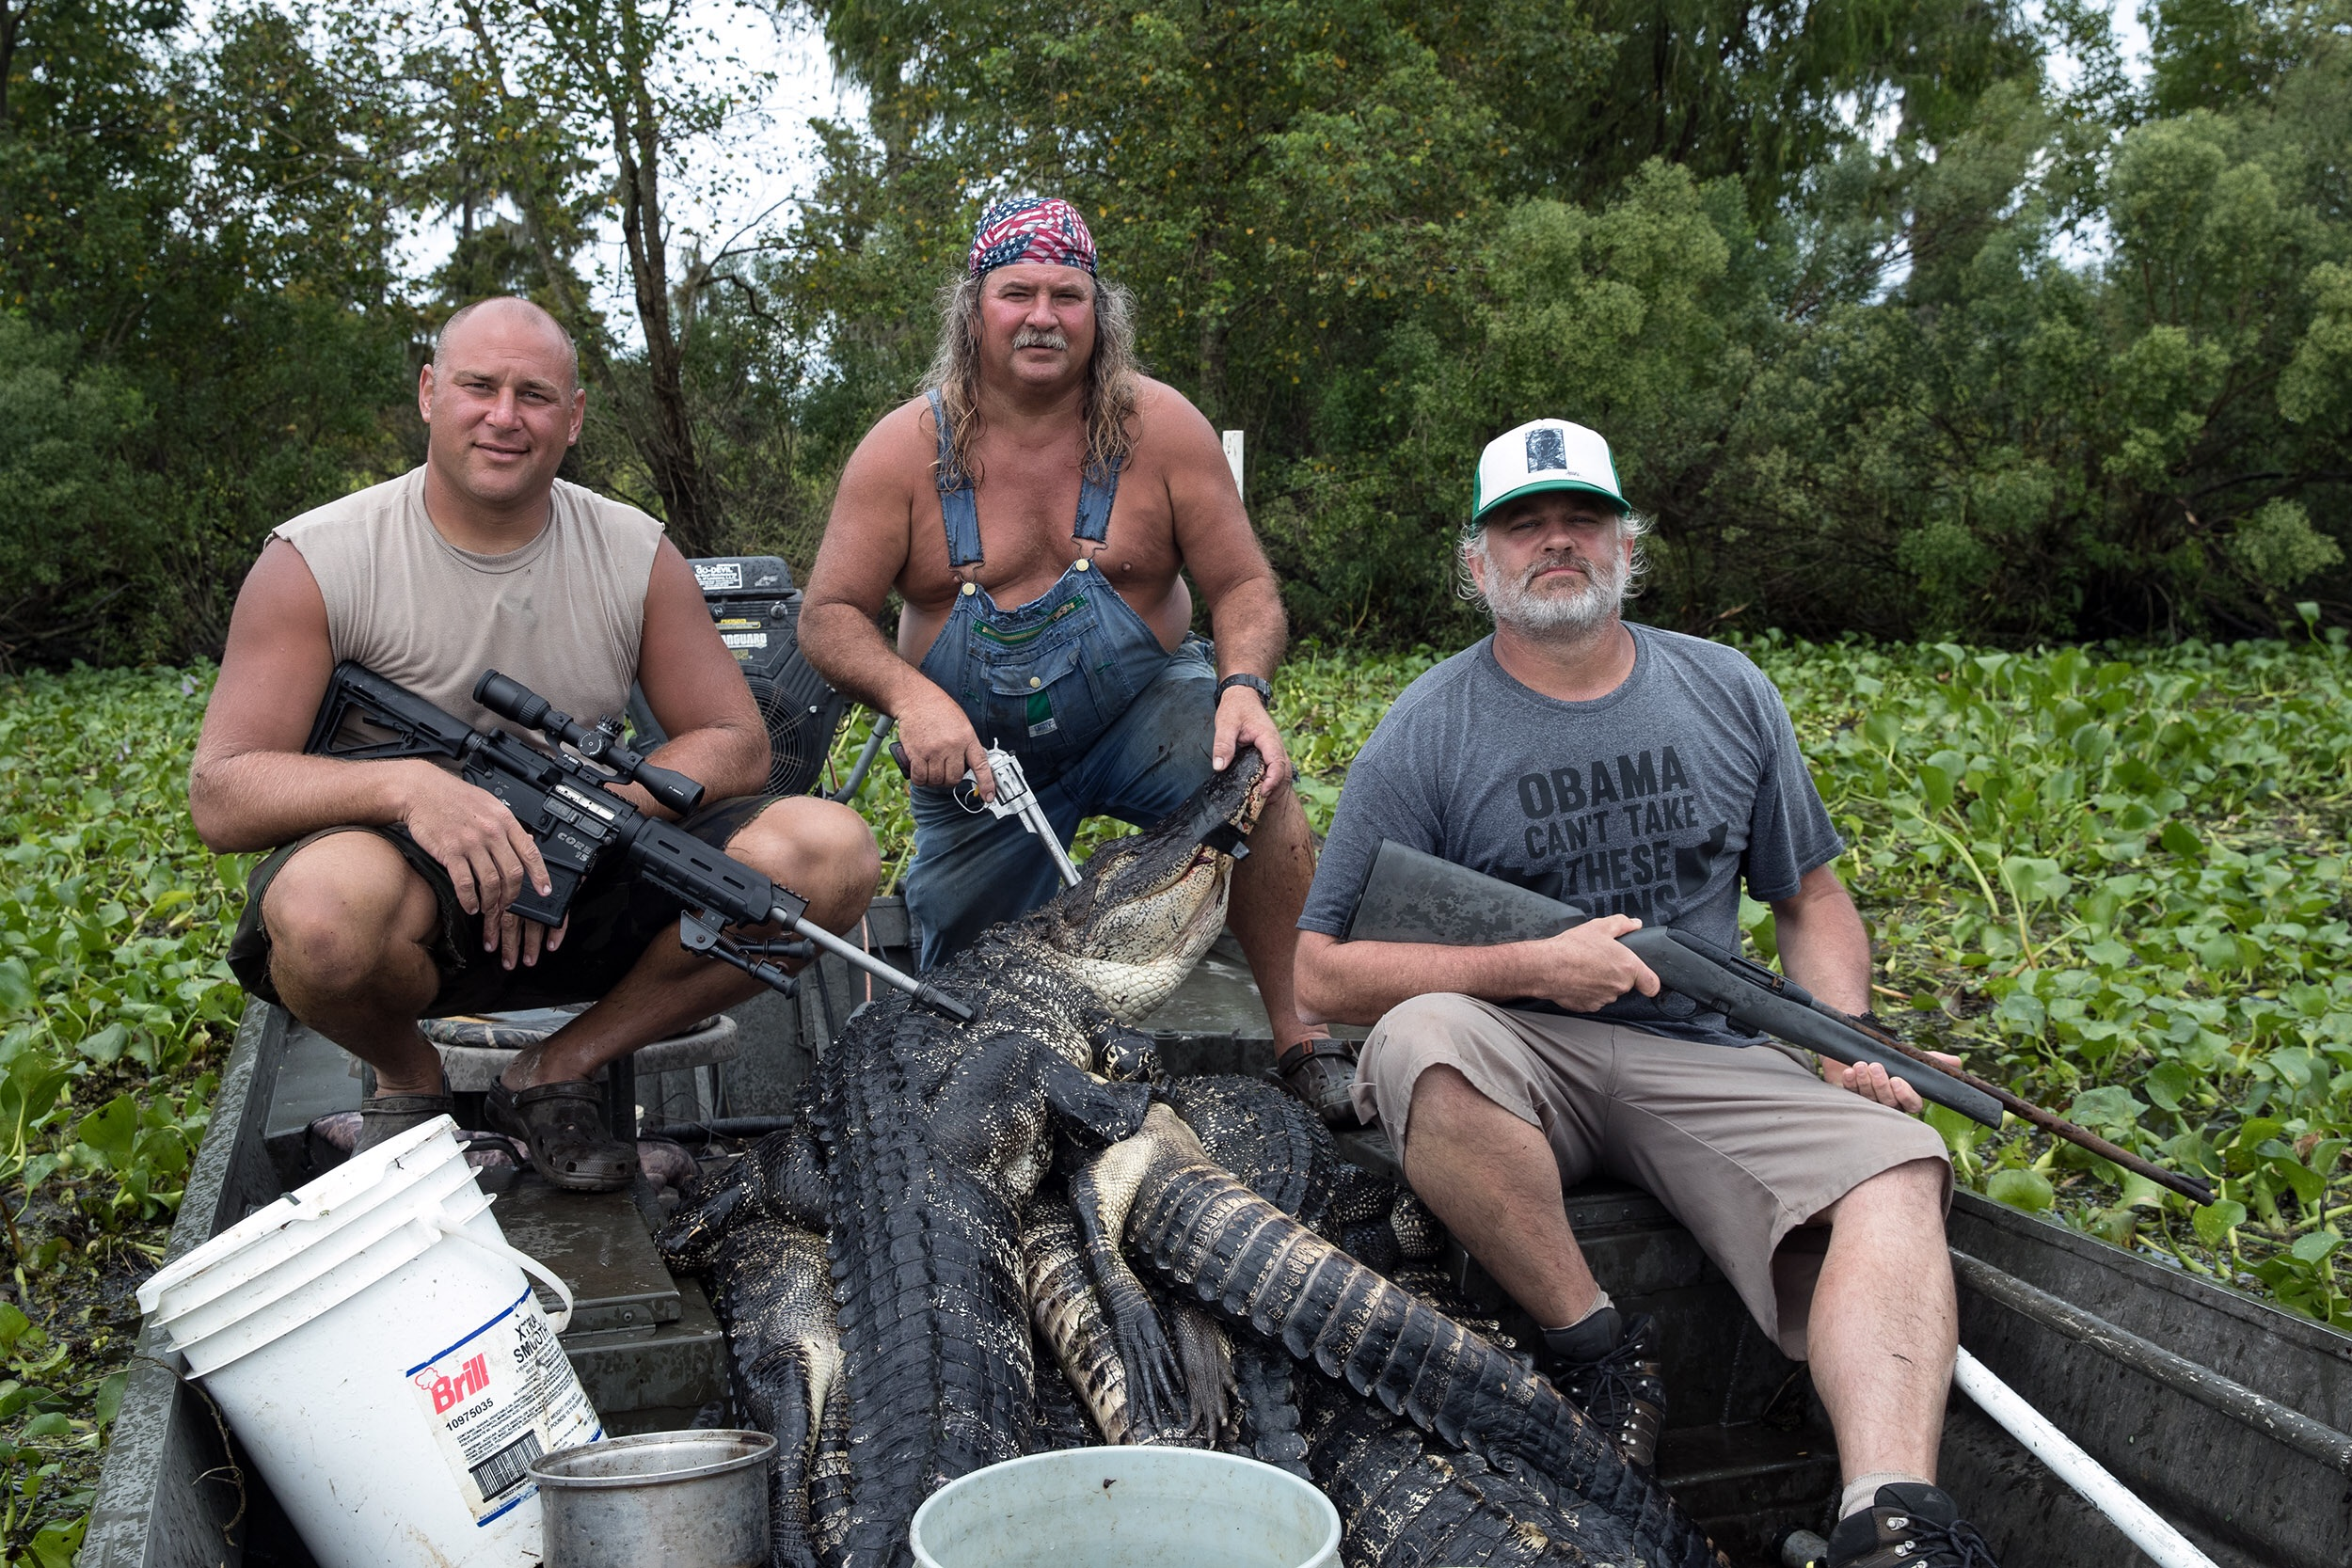 """Ron, Bruce, Matt, and a bunch of gators who had a bad day. FYI: the shirt says """"Obama can't take these guns"""" with arrows pointing to my arms. #swamppeople #historychannel #dbrproductions www.dbrpro.com  📷: """"Pompo"""" Alfonso Bresciani"""